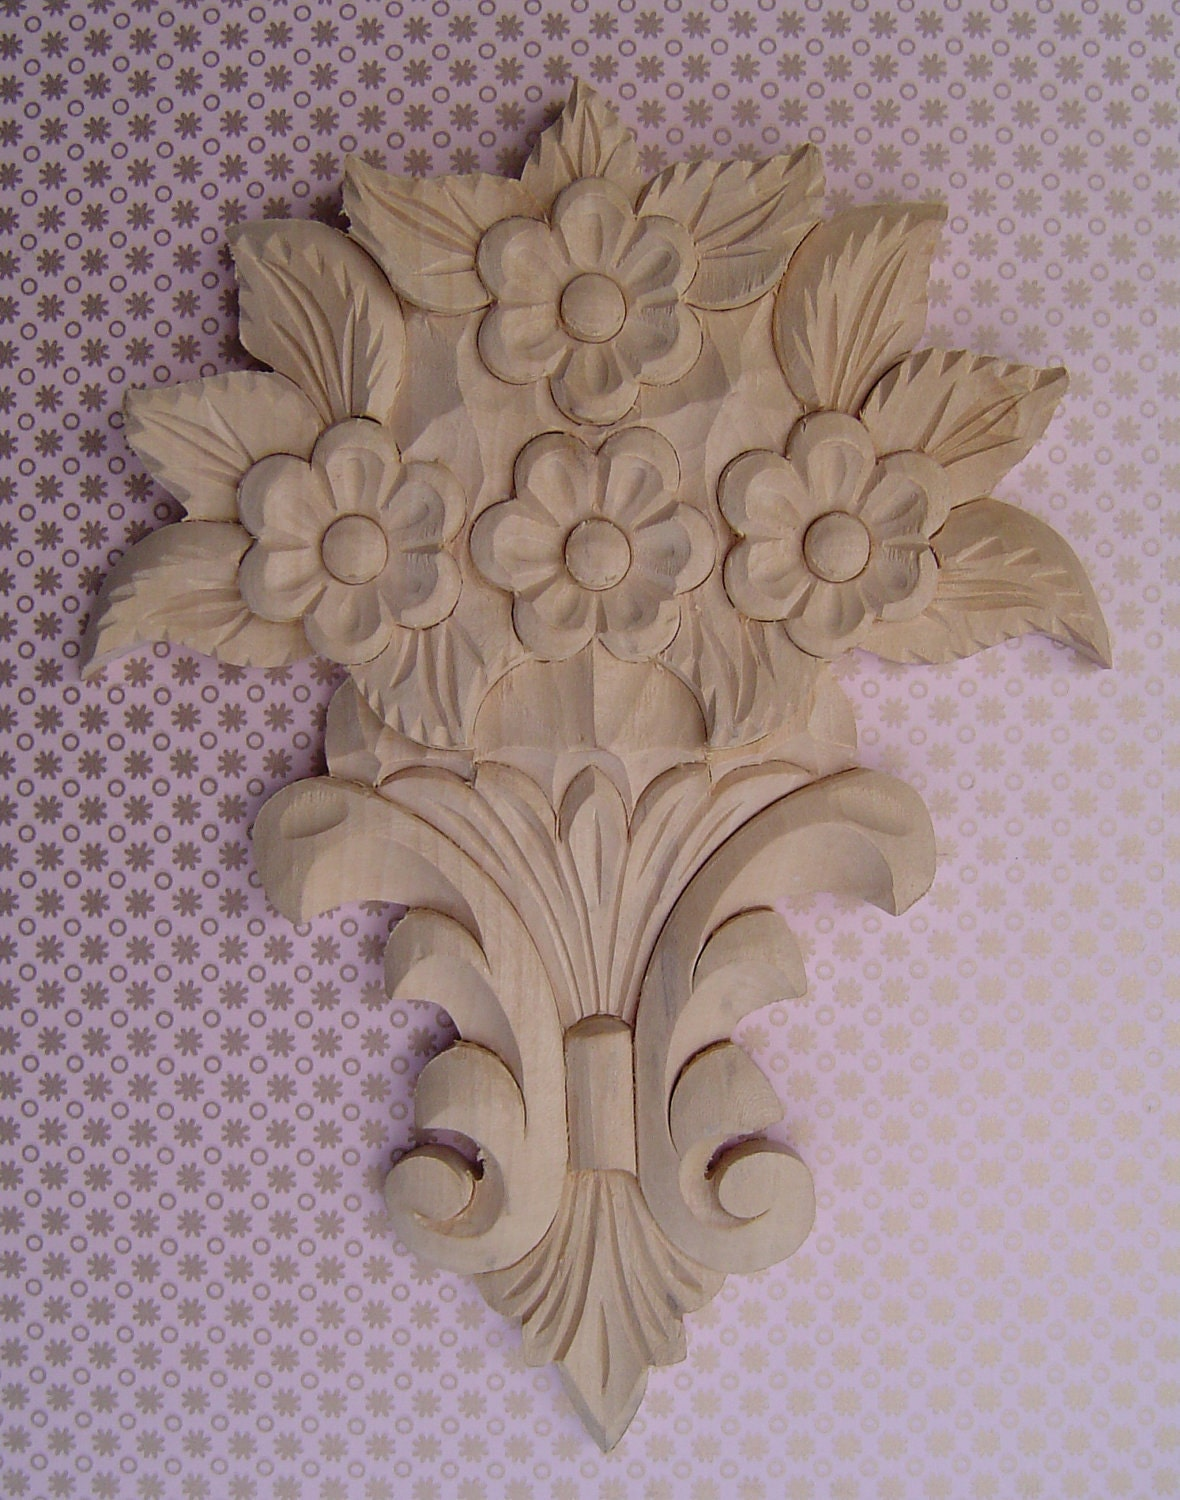 Unfinished flower wood carving